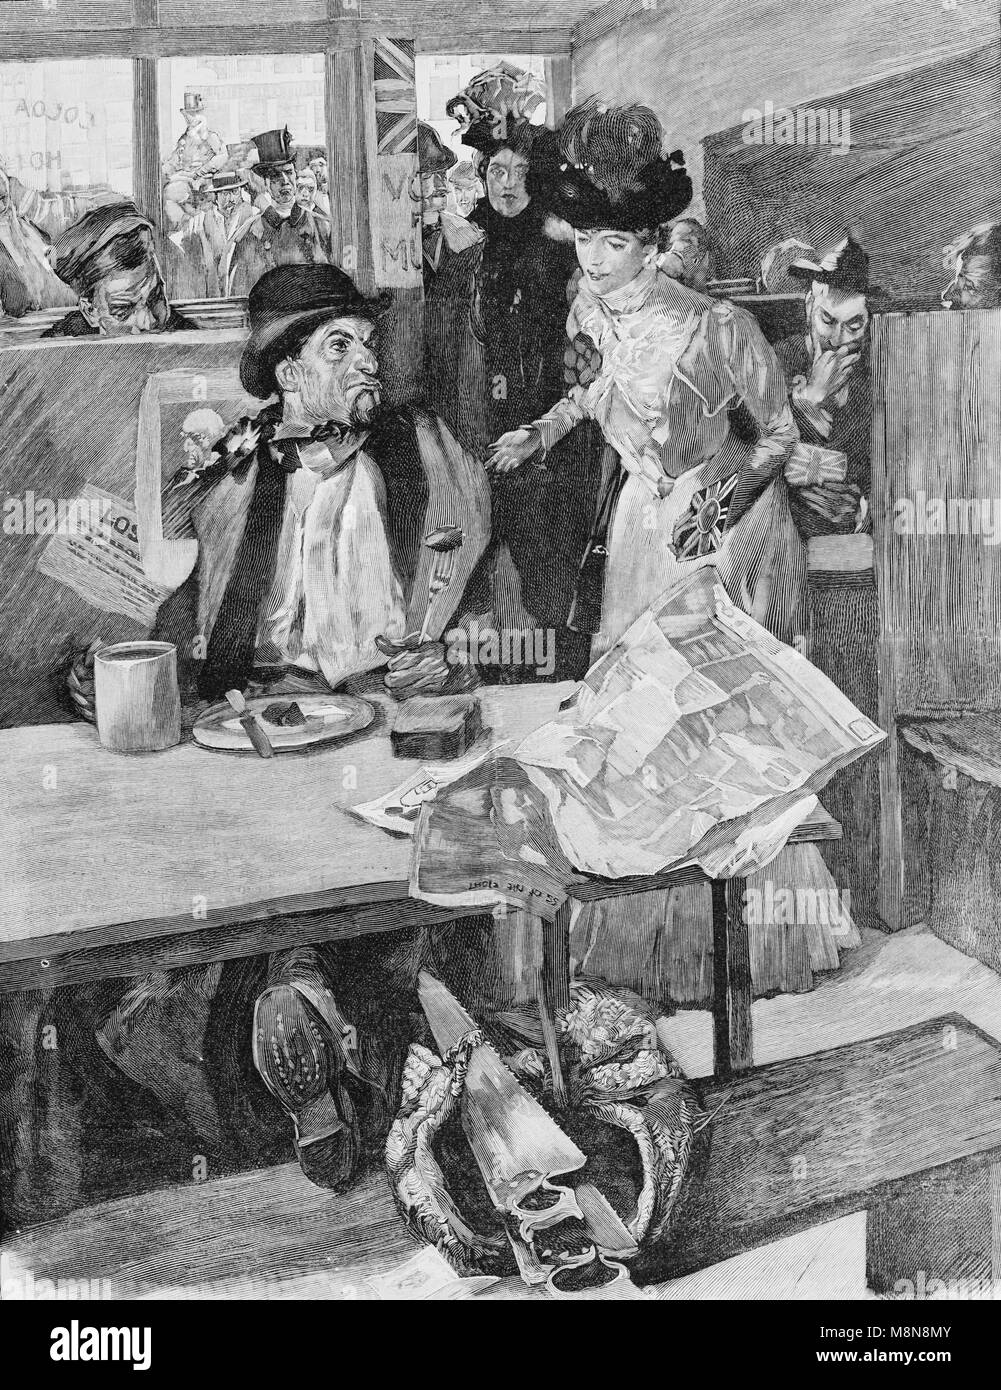 Lady making electoral propaganda in a British pub, Picture from the French weekly newspaper l'Illustration, - Stock Image